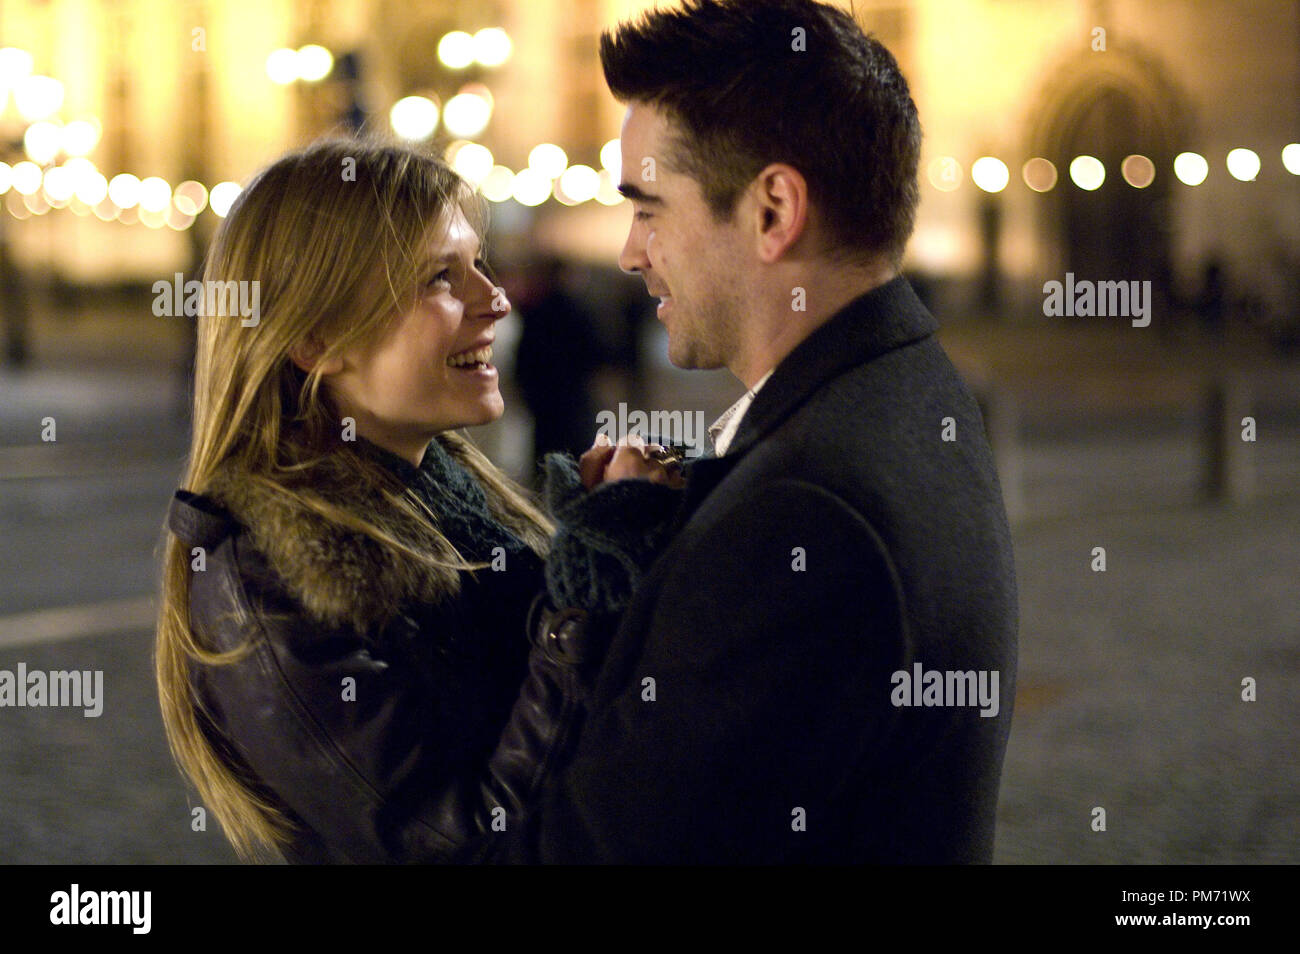 Film Still from 'In Bruges' Clemence Poesy, Colin Farrell © 2008 Focus Features Photo credit: Jaap Buitendijk  File Reference # 30755250THA  For Editorial Use Only -  All Rights Reserved - Stock Image